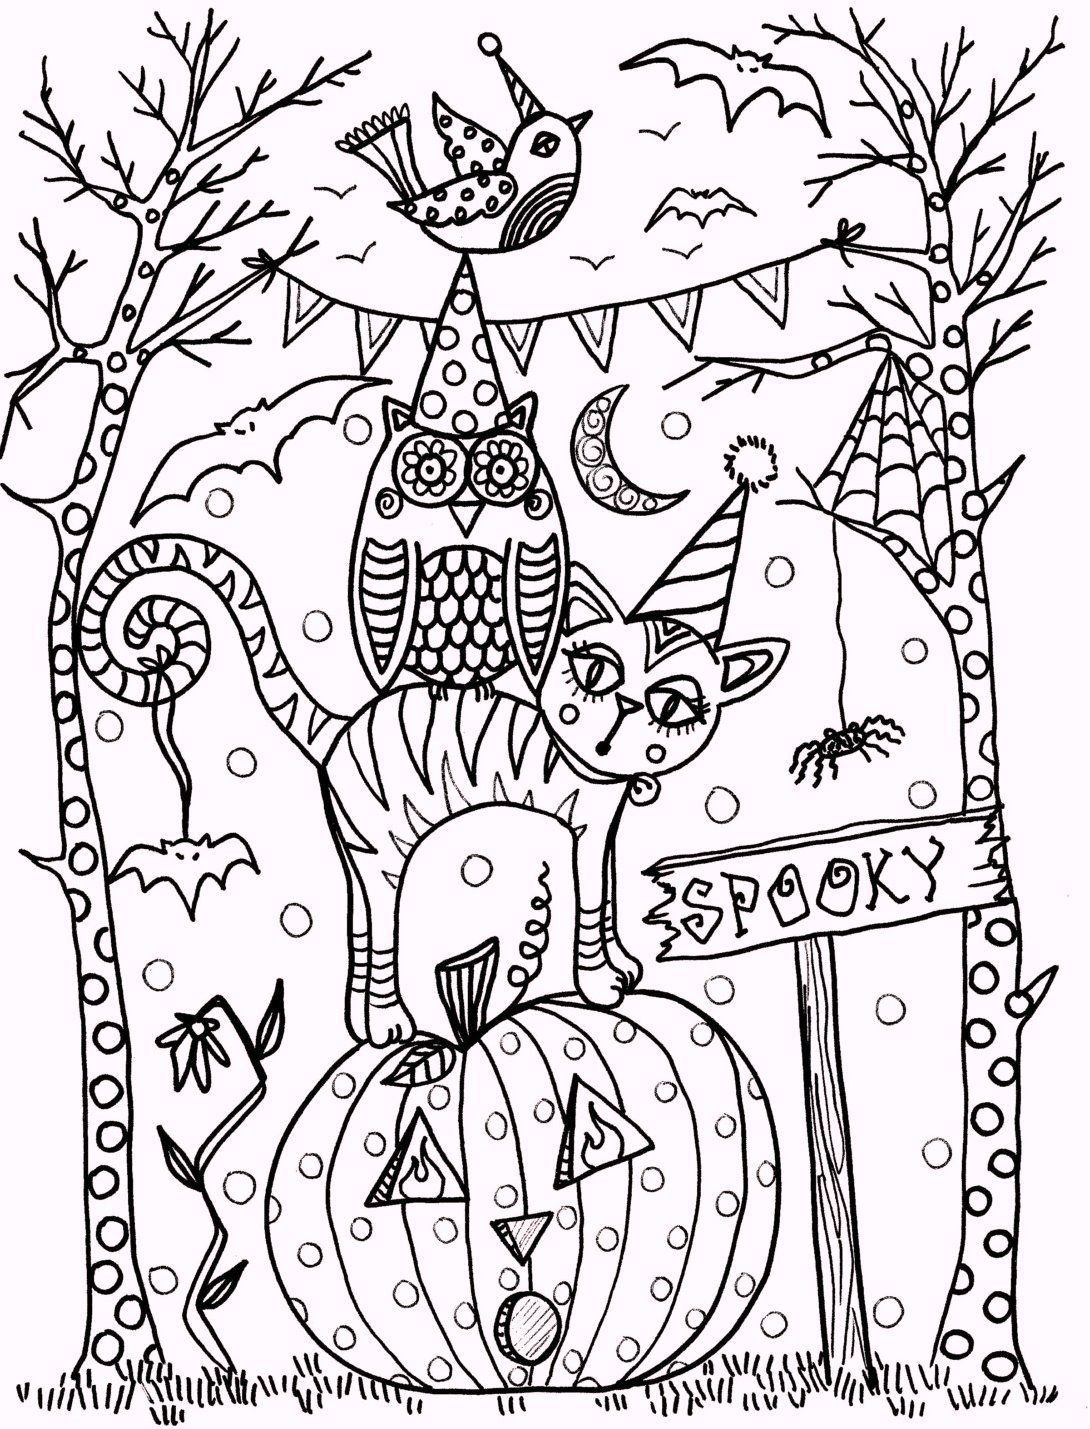 Coloringpagesfortoddlers Com Enjoy These Free Printable New Vintage Halloween Coloring Halloween Coloring Book Fall Coloring Pages Halloween Coloring Pages